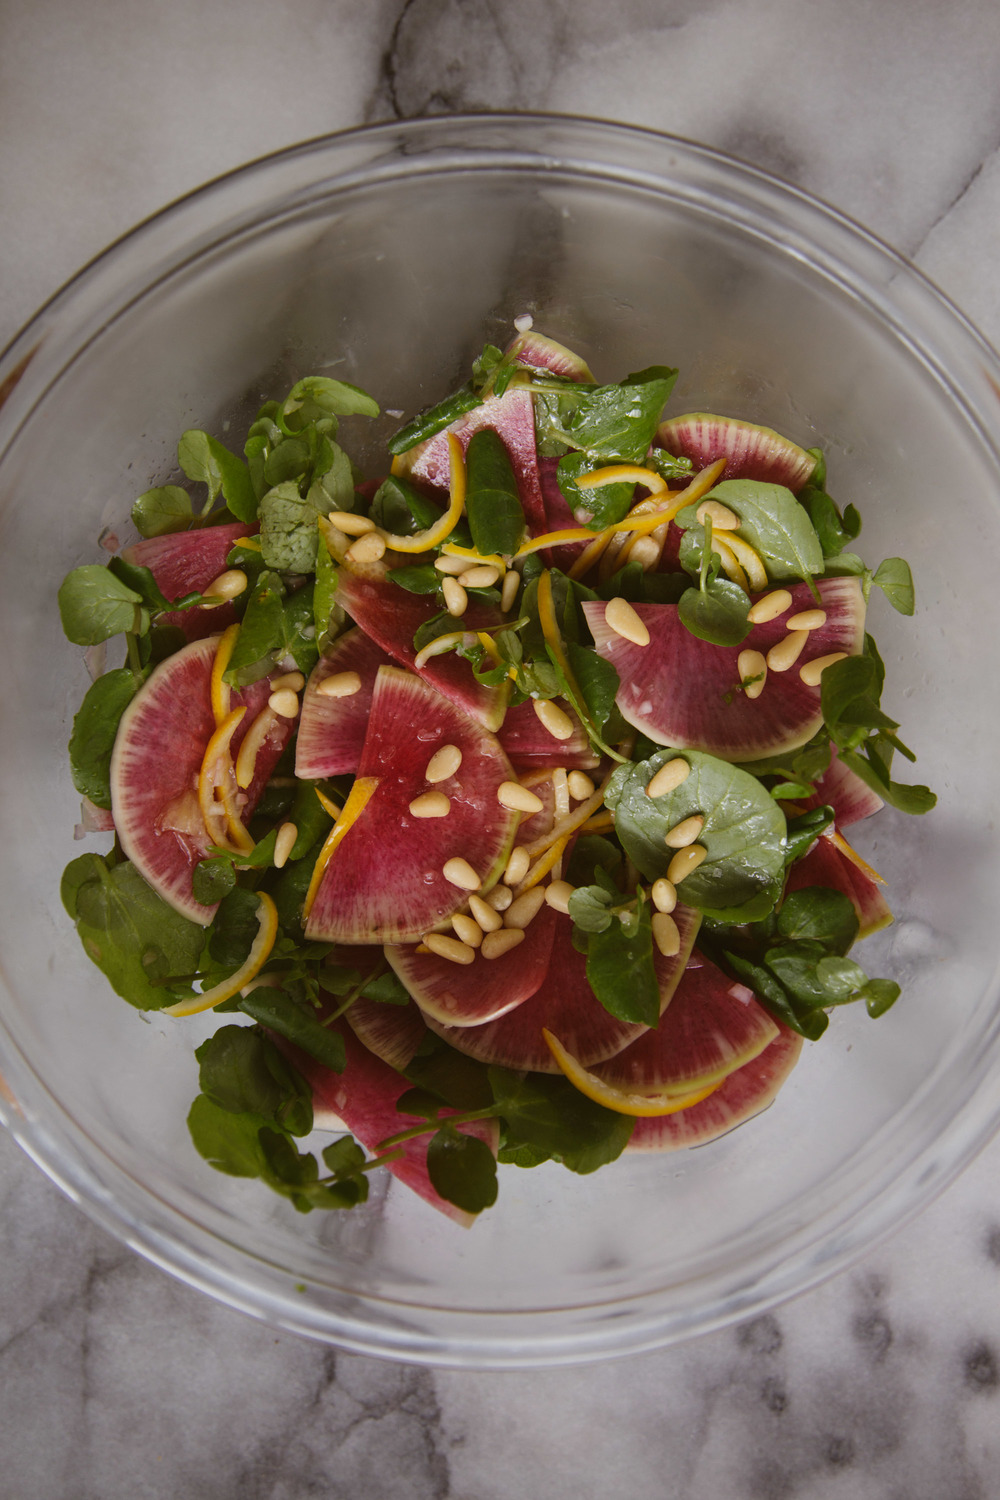 Watercress and watermelon radish copy.JPG